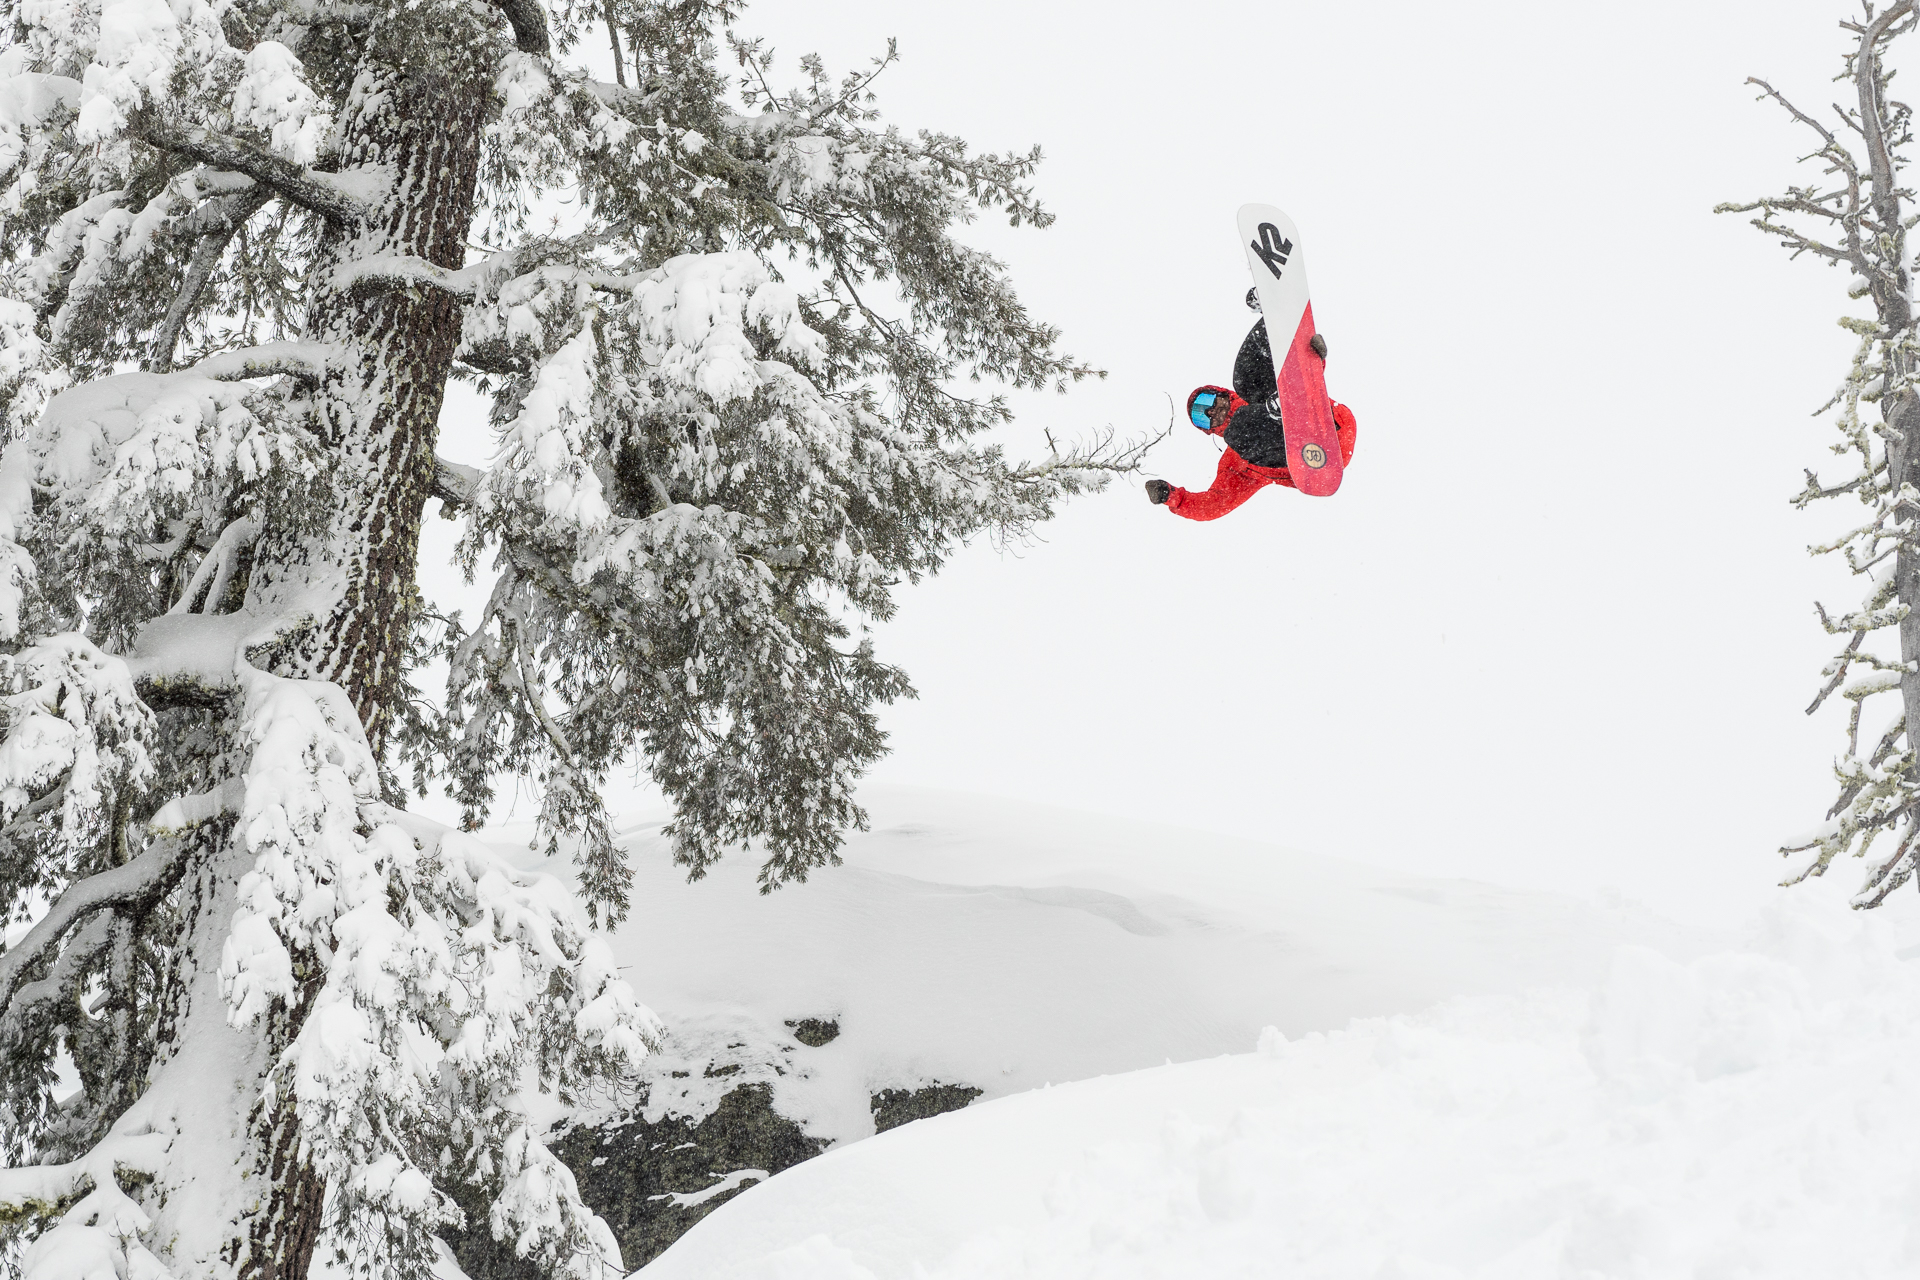 Johnny Brady Jr., cab 5. Donner Pass backcountry, CA.